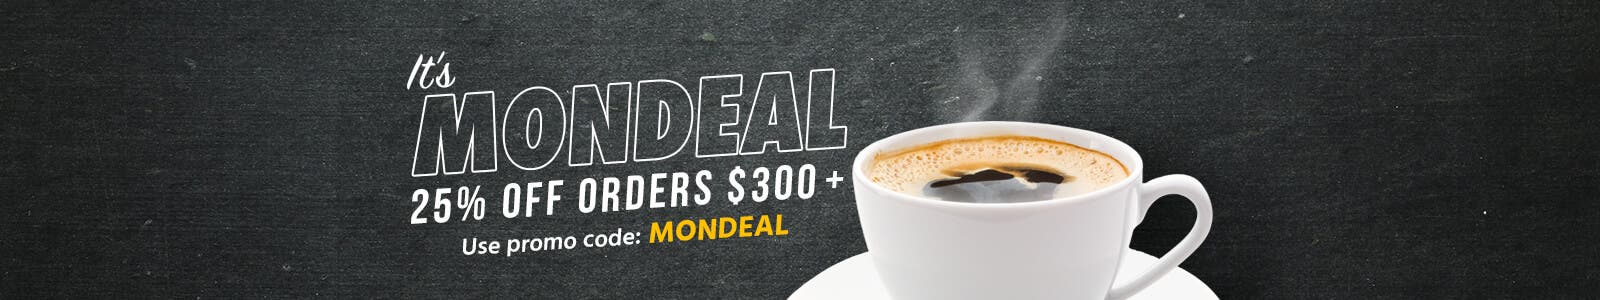 It's MonDeal! 25% OFF Orders $300 + Use promo code: MONDEAL Shop Now>